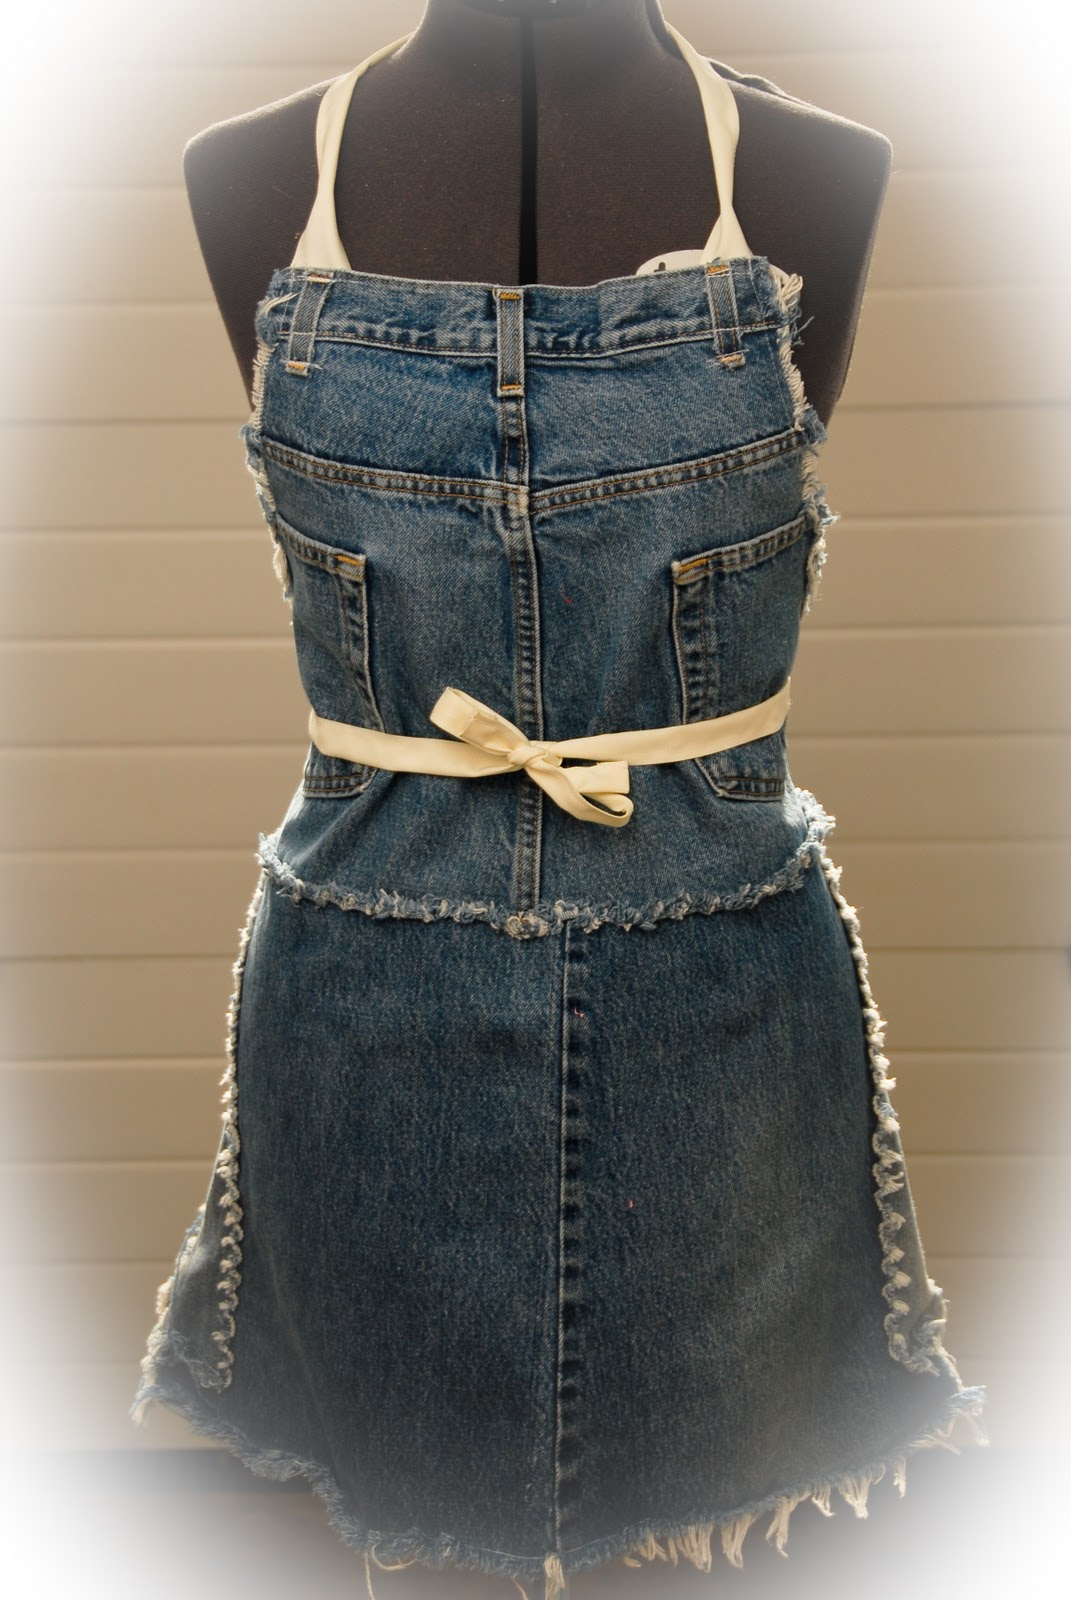 How To Make A Book Cover Out Of Old Jeans : Re incarnated new uses for old jeans